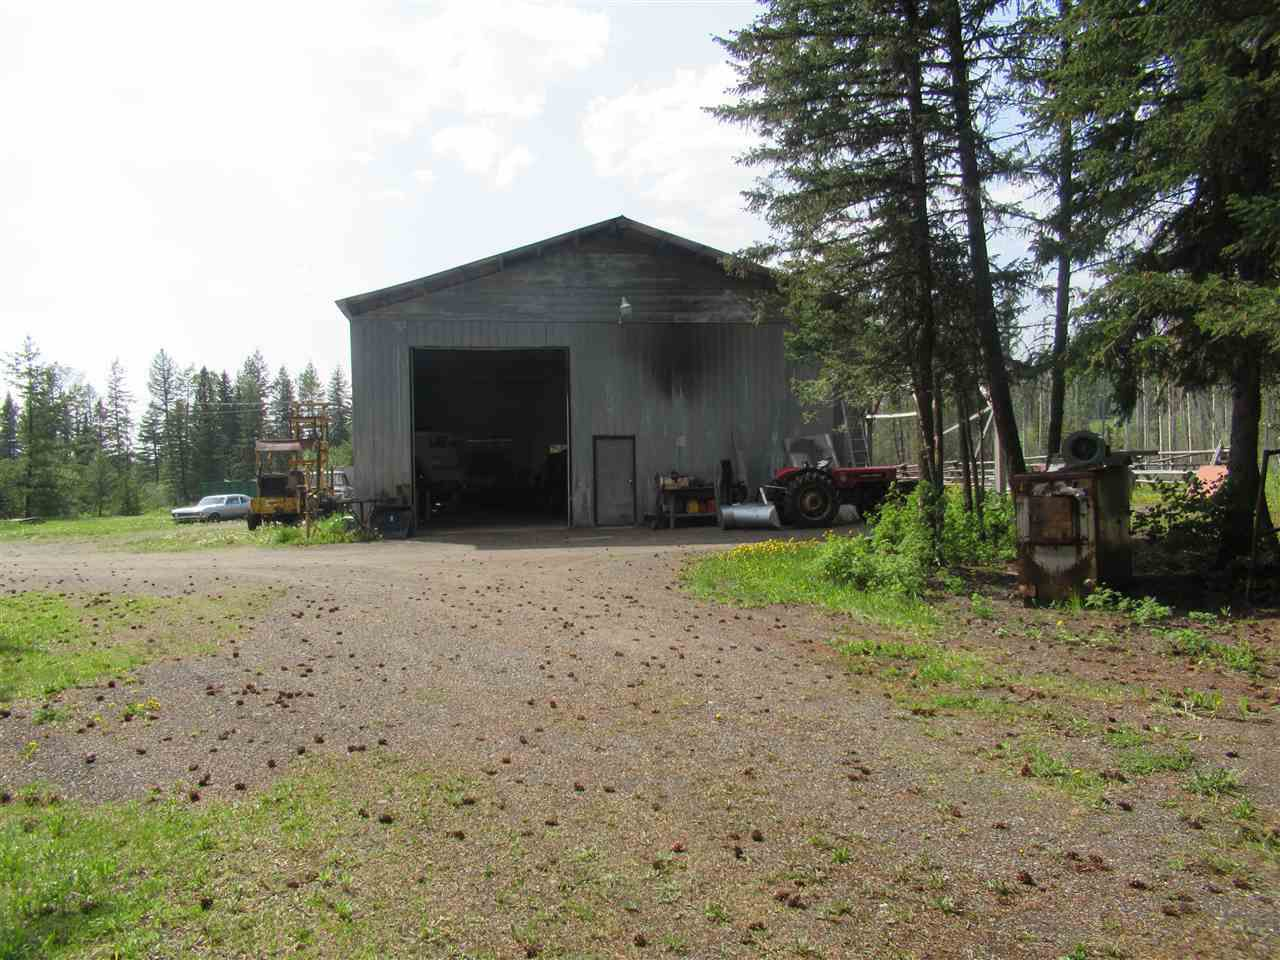 Main Photo: 1224 DESAUTEL Road in Williams Lake: Williams Lake - Rural East Manufactured Home for sale (Williams Lake (Zone 27))  : MLS®# R2376873